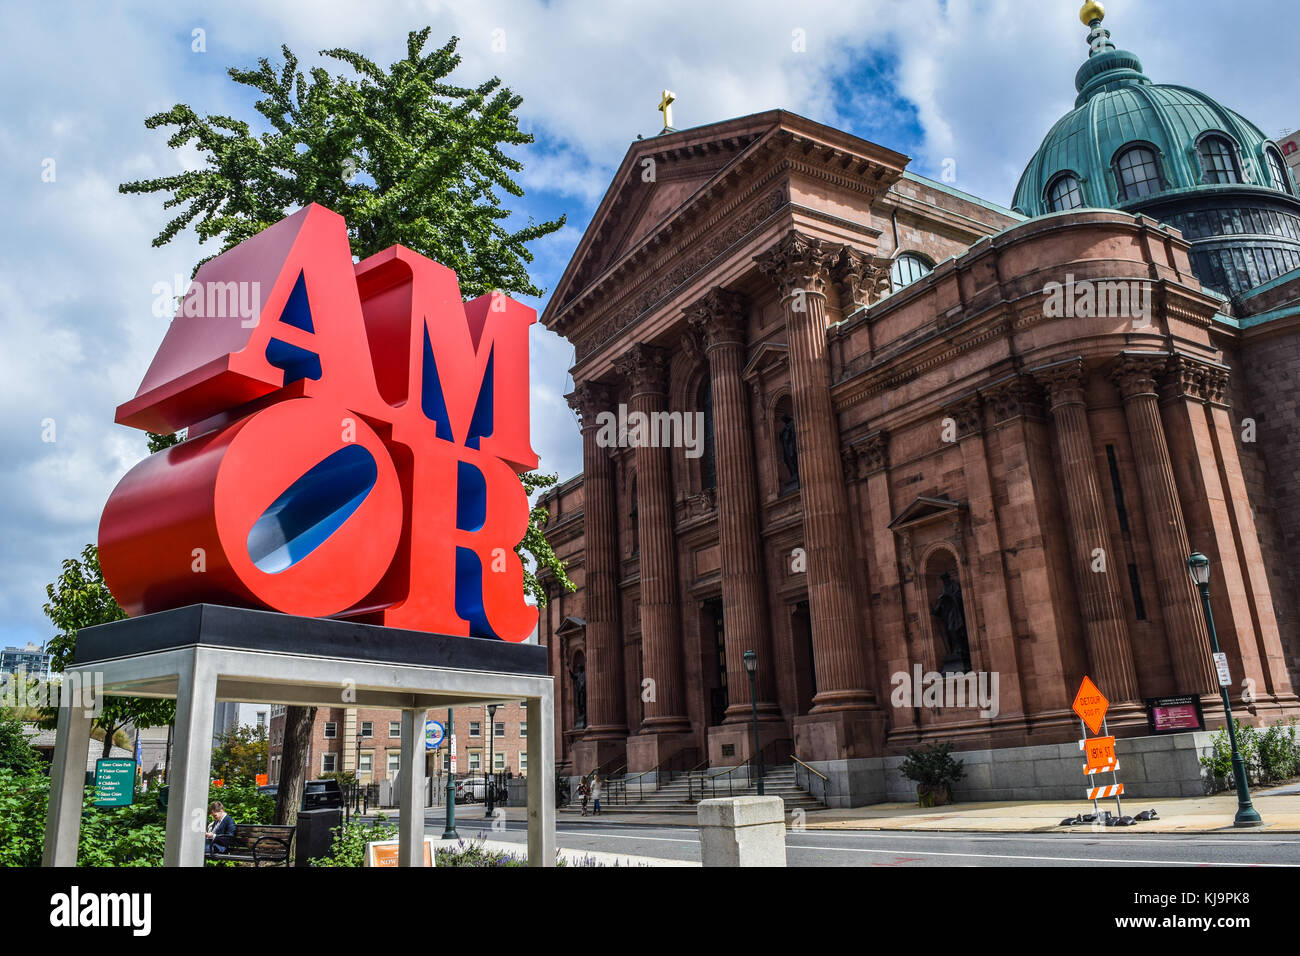 City of Brotherly Love - Stock Image